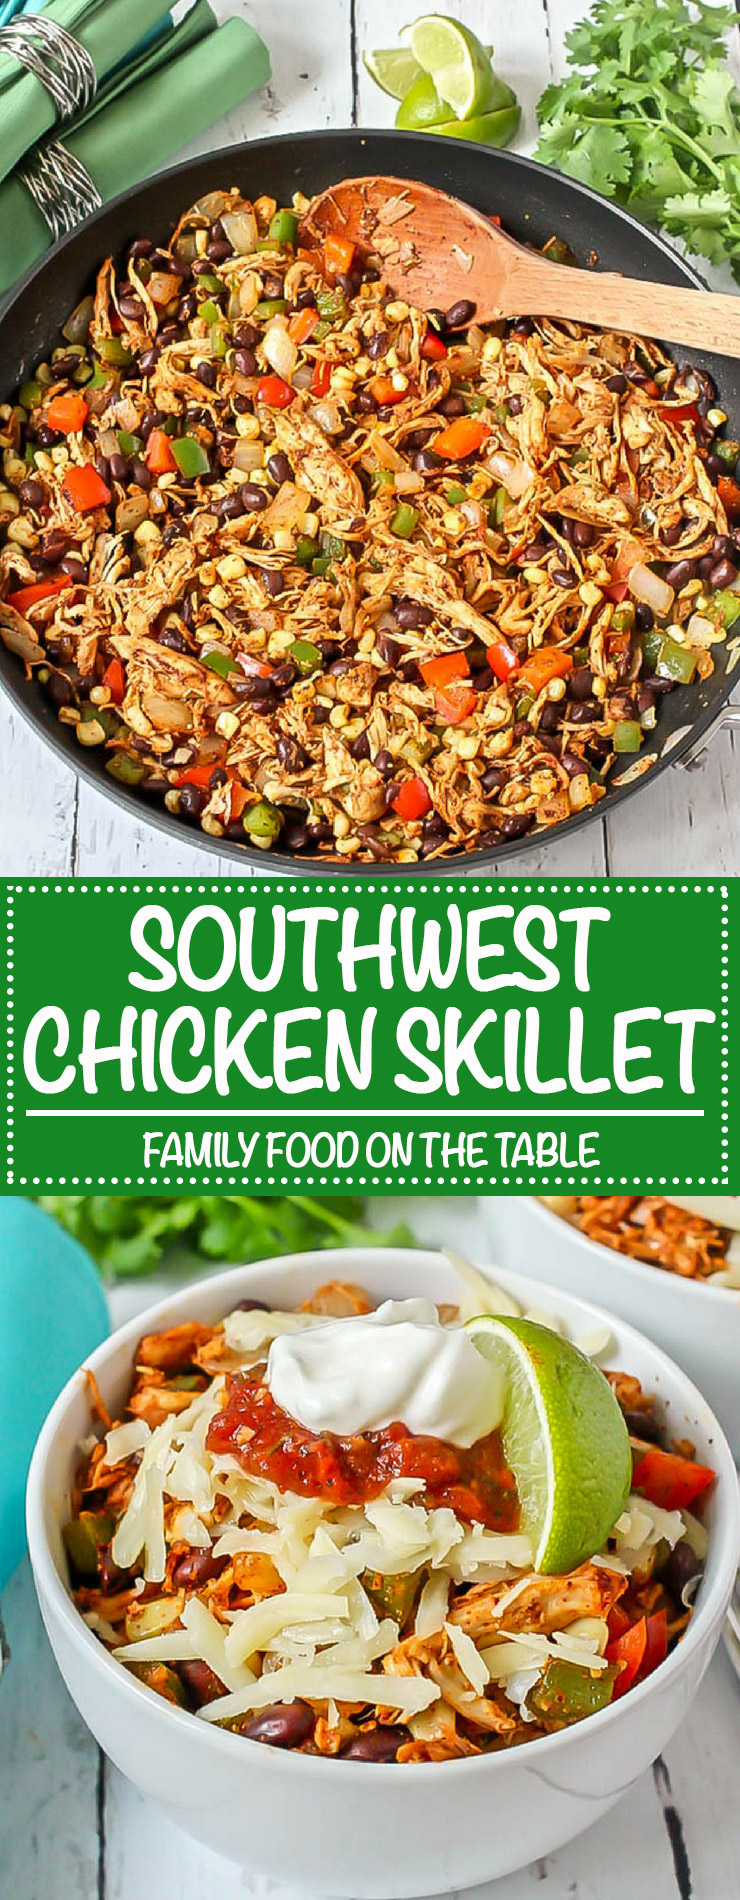 This quick and easy Southwest chicken skillet dinner uses rotisserie chicken, fresh veggies, canned beans and simple spices for a delicious meal that's ready in just 15 minutes! #easychickendinner #onepotrecipe | www.familyfoodonthetable.com